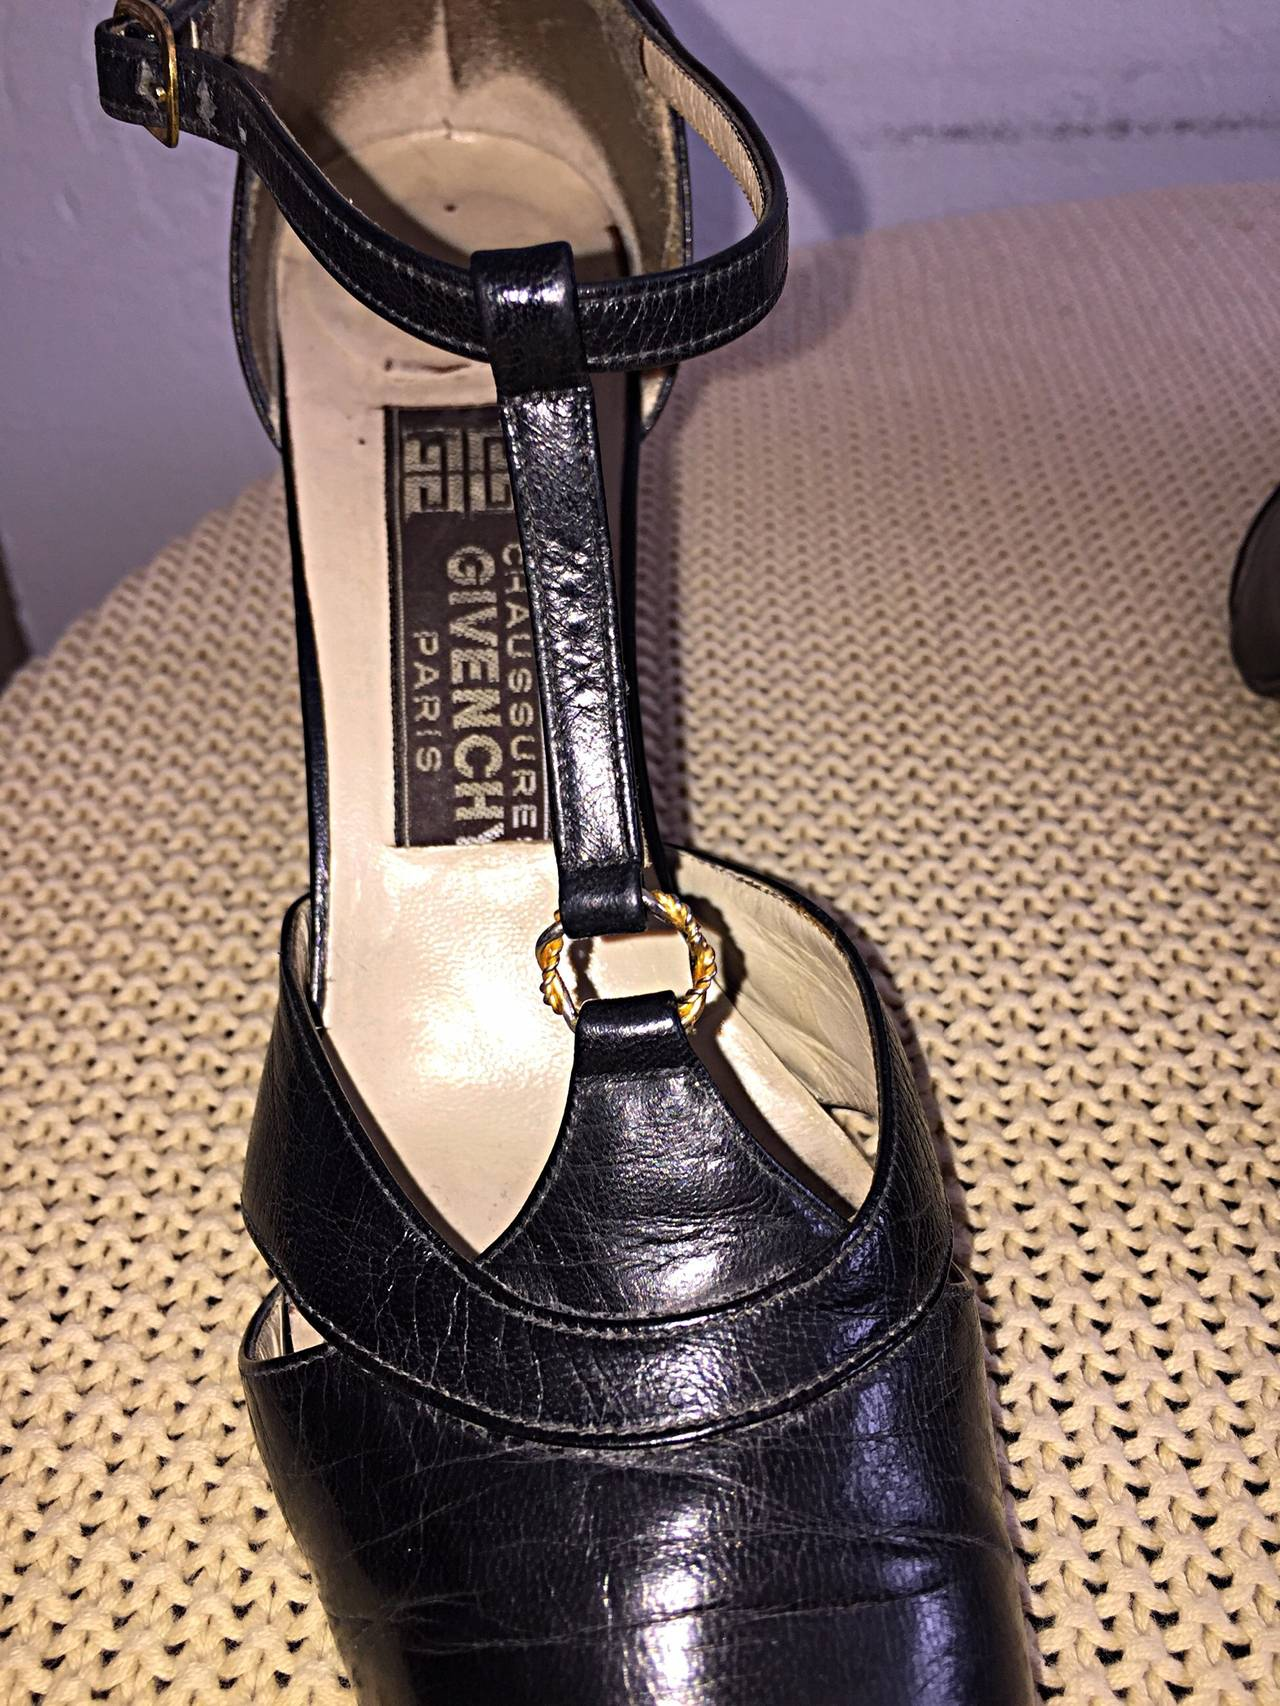 1960s Vintage Givenchy Black Leather Peekaboo T - Strap Heels Shoes Size 8 6